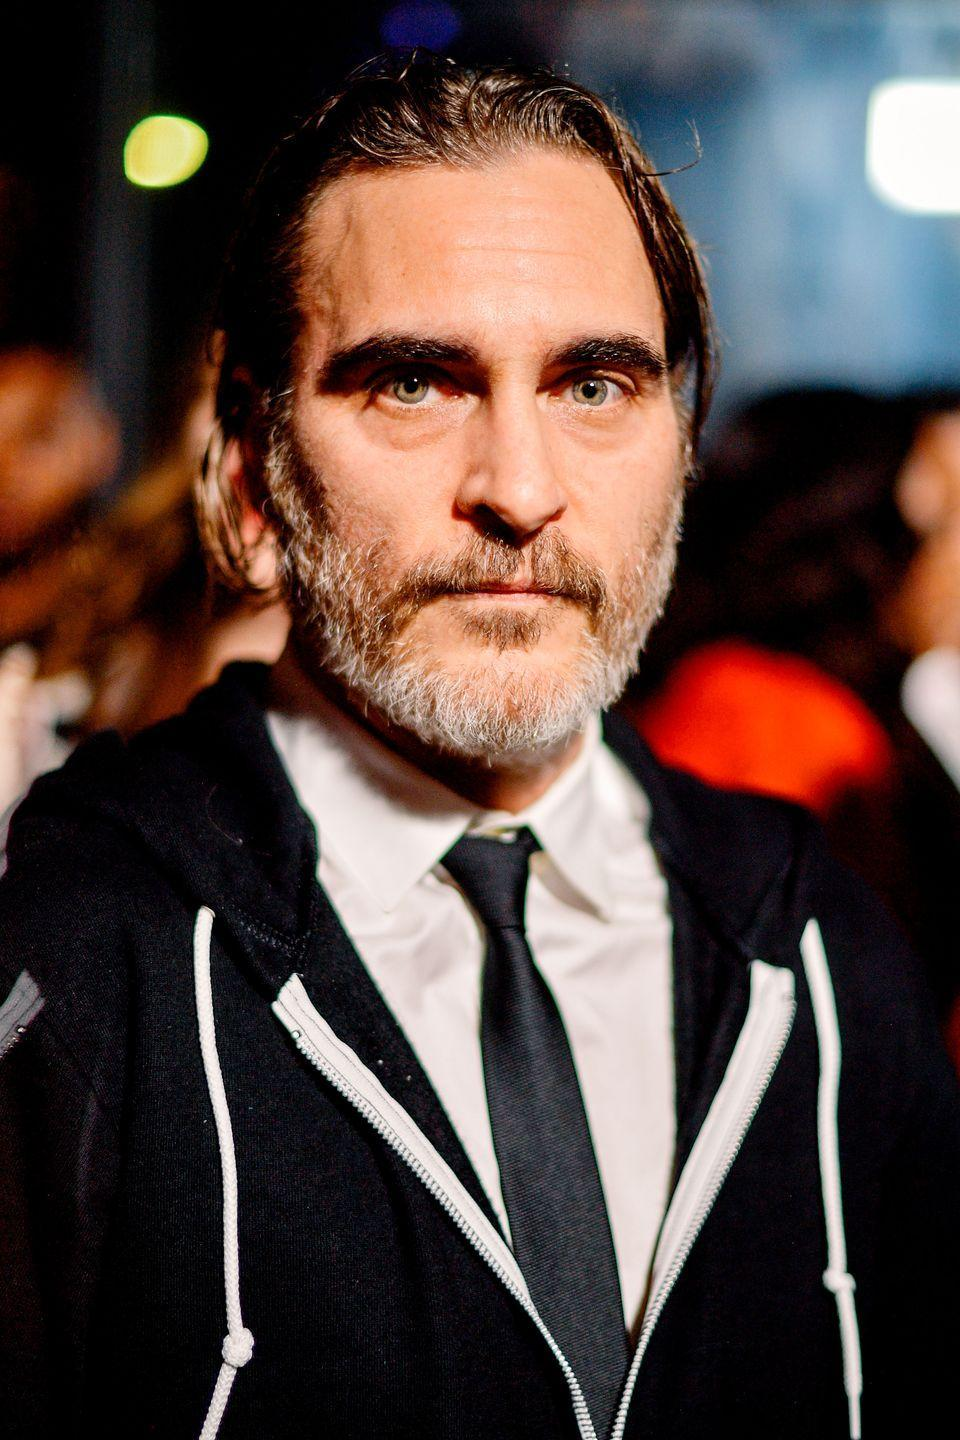 "<p><strong>Born</strong>: Joaquín Rafael Bottom<strong><br></strong></p><p>Before Joaquin Phoenix was Joaquin Phoenix, he was Joaquín Rafael... Bottom. Yep, Joaquin spent the first few years of his life as a member of the Bottom family, until his parents left their religious group and <a href=""https://www.digitalspy.com/showbiz/a787625/youll-never-guess-what-joaquin-phoenixs-real-name-is/"" rel=""nofollow noopener"" target=""_blank"" data-ylk=""slk:chose Phoenix"" class=""link rapid-noclick-resp"">chose Phoenix</a> as the new family surname.</p>"